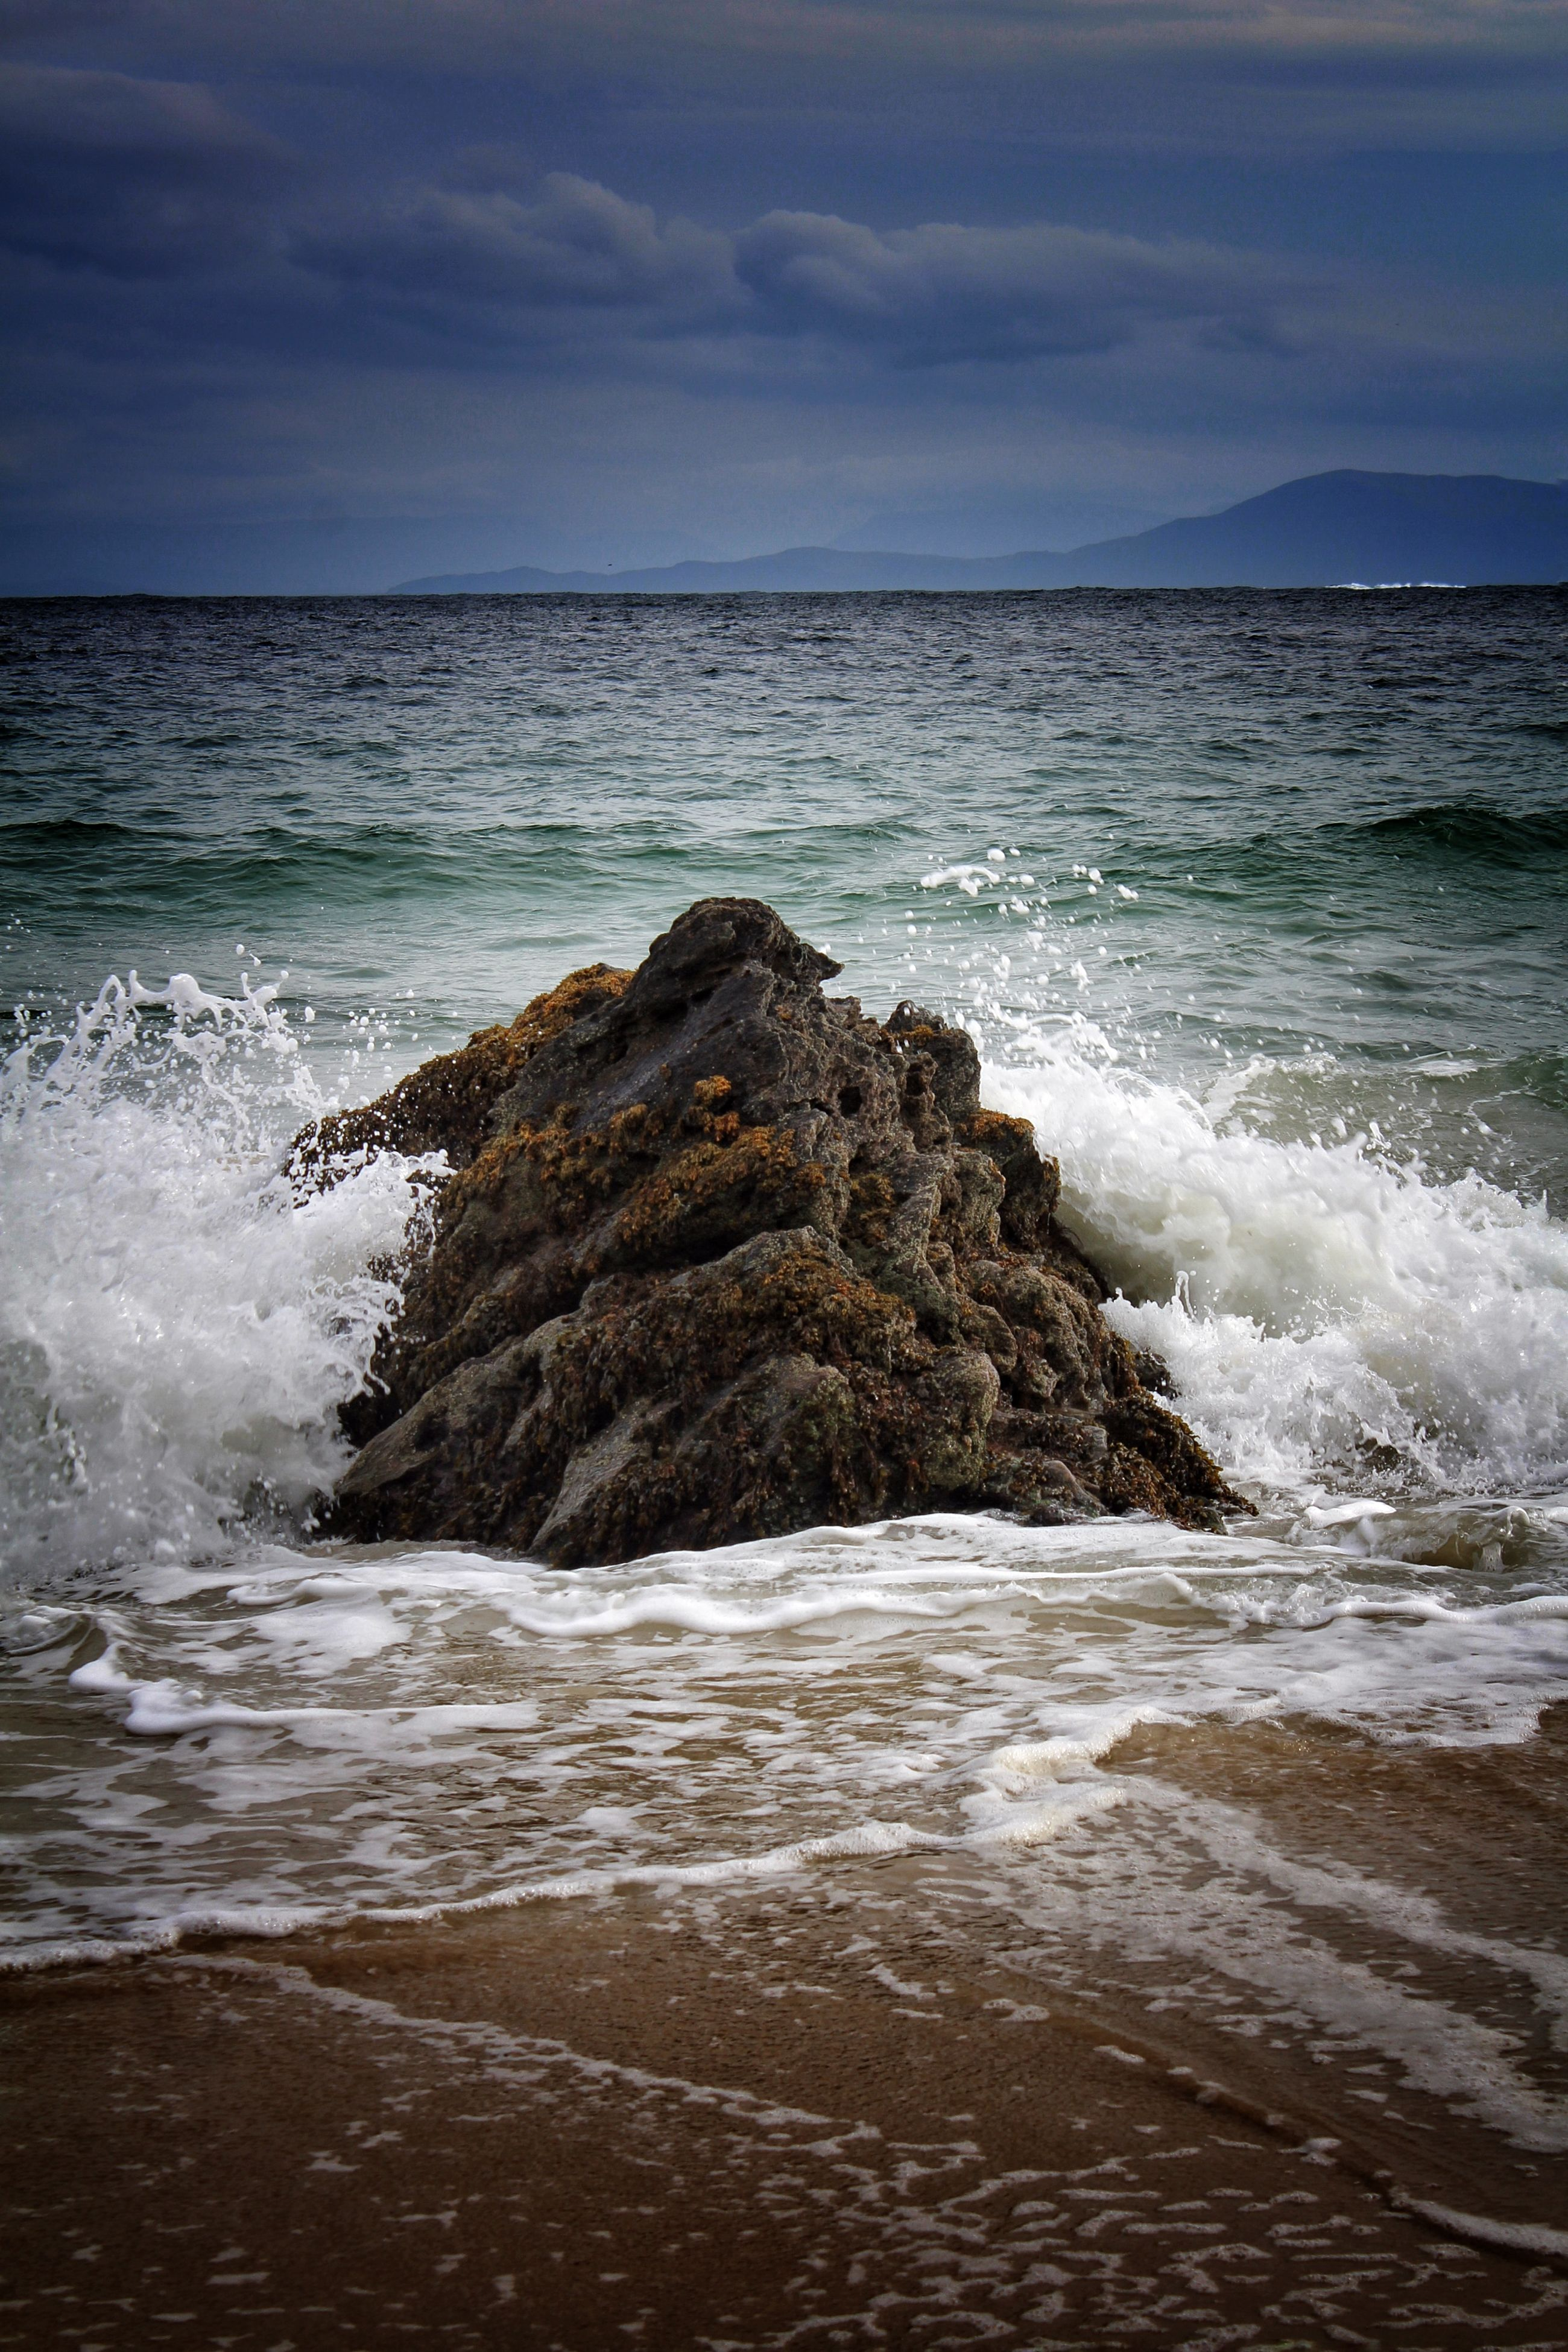 sea, water, horizon over water, wave, beach, scenics, sky, surf, beauty in nature, tranquil scene, shore, tranquility, nature, idyllic, tide, motion, cloud - sky, seascape, rock - object, coastline